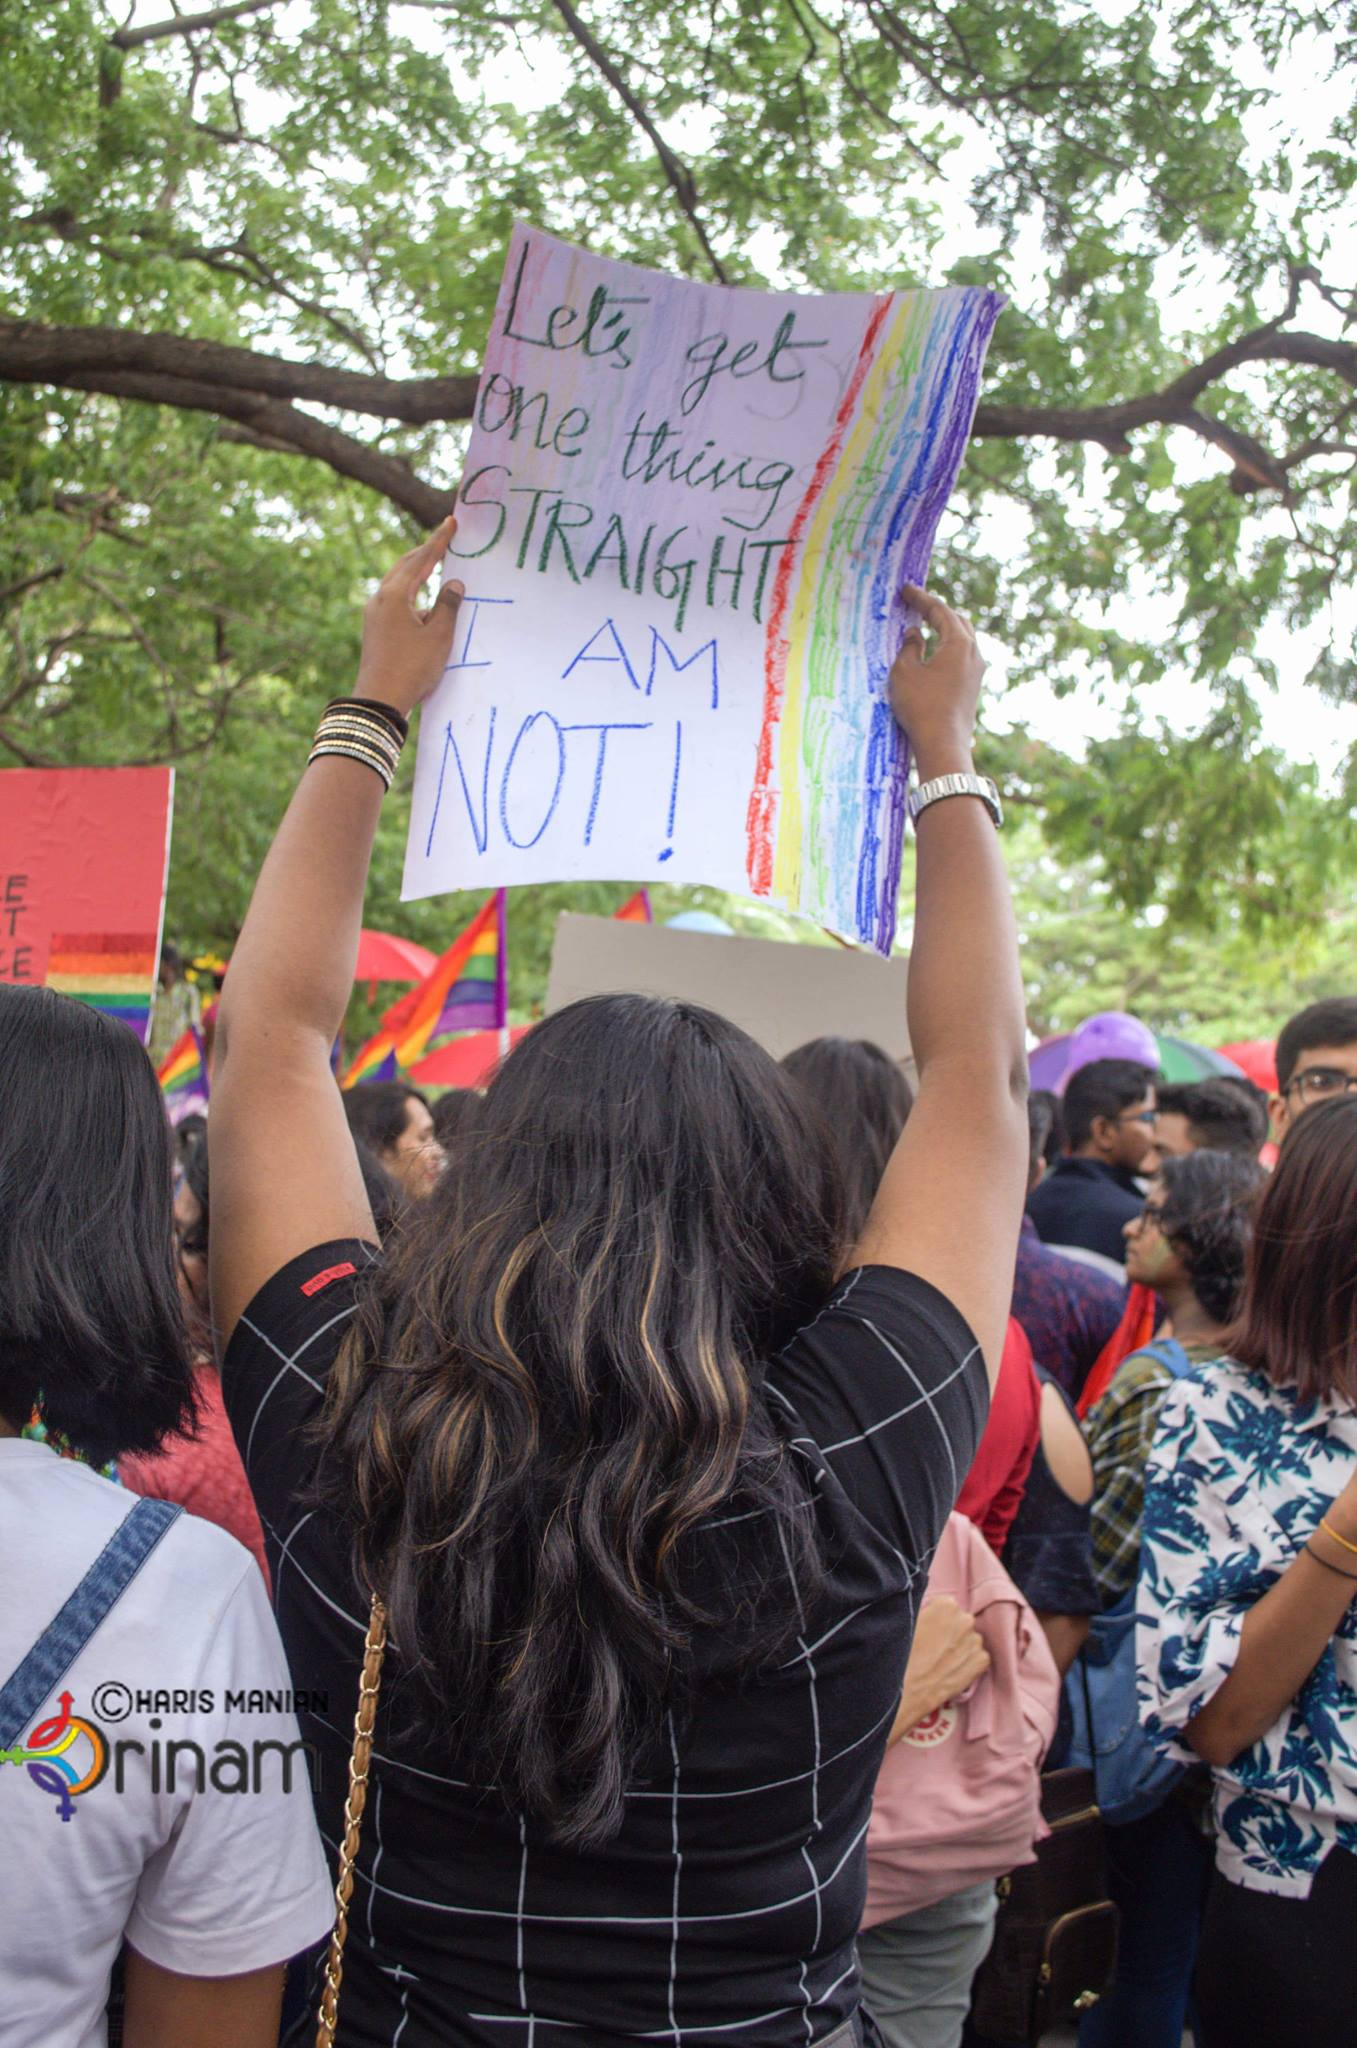 Image from Chennai Pride 2018, copyright Orinam.net